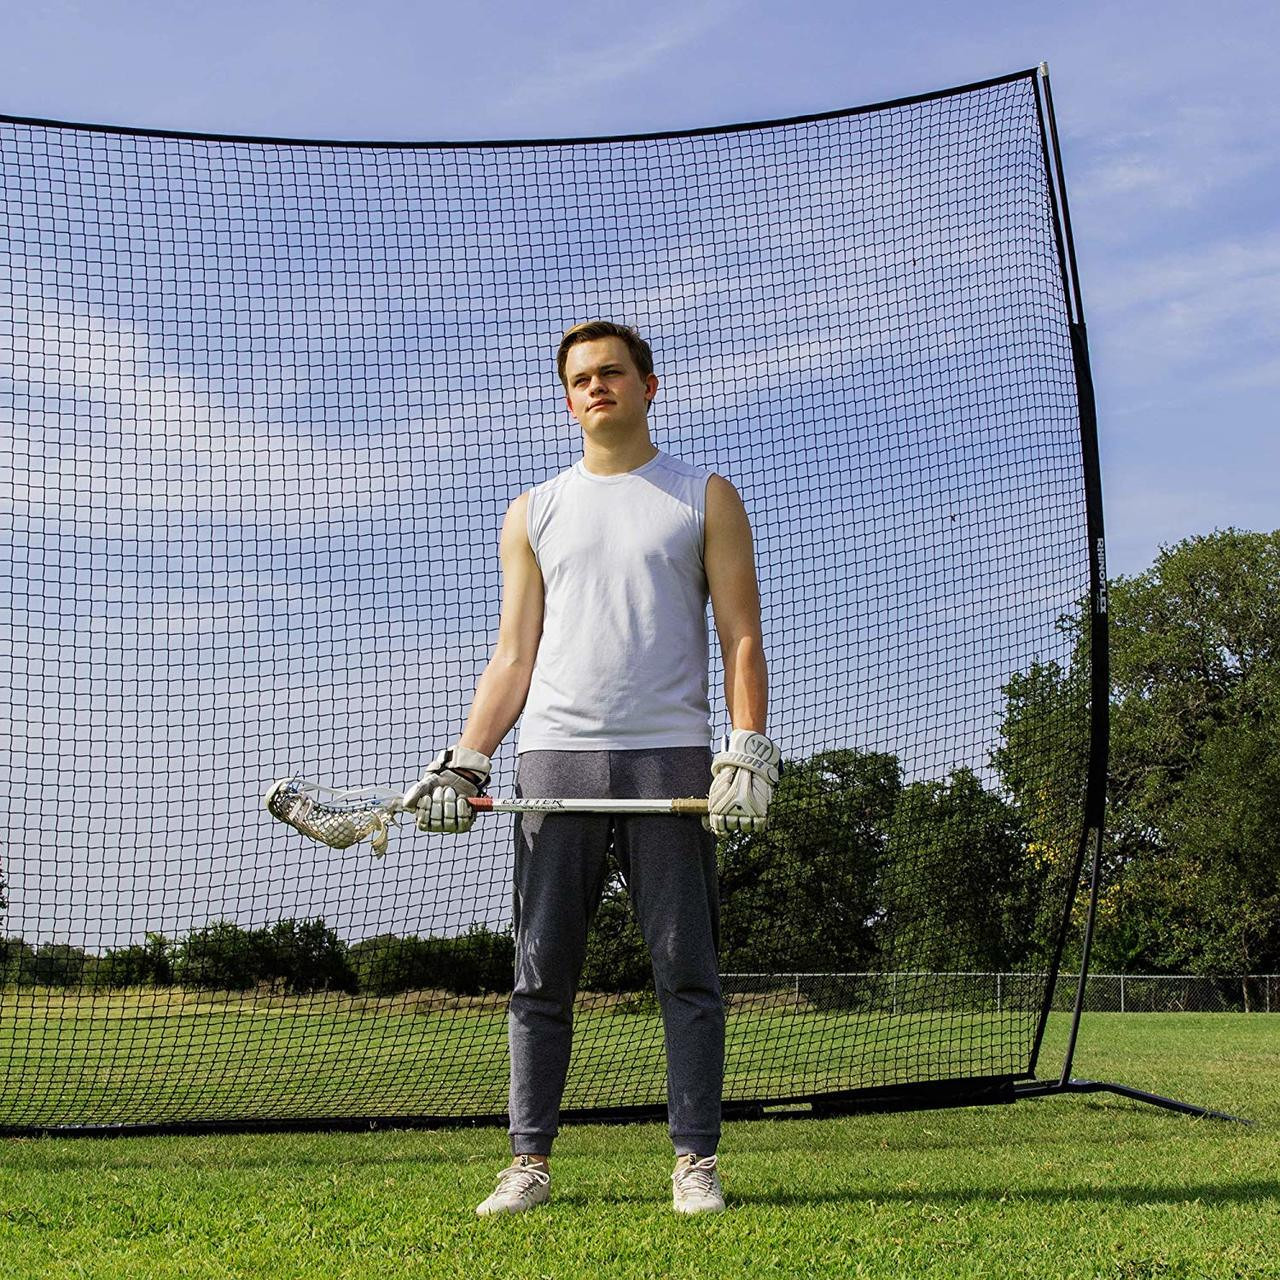 Champion Sports Rhino Flex Barrier Net